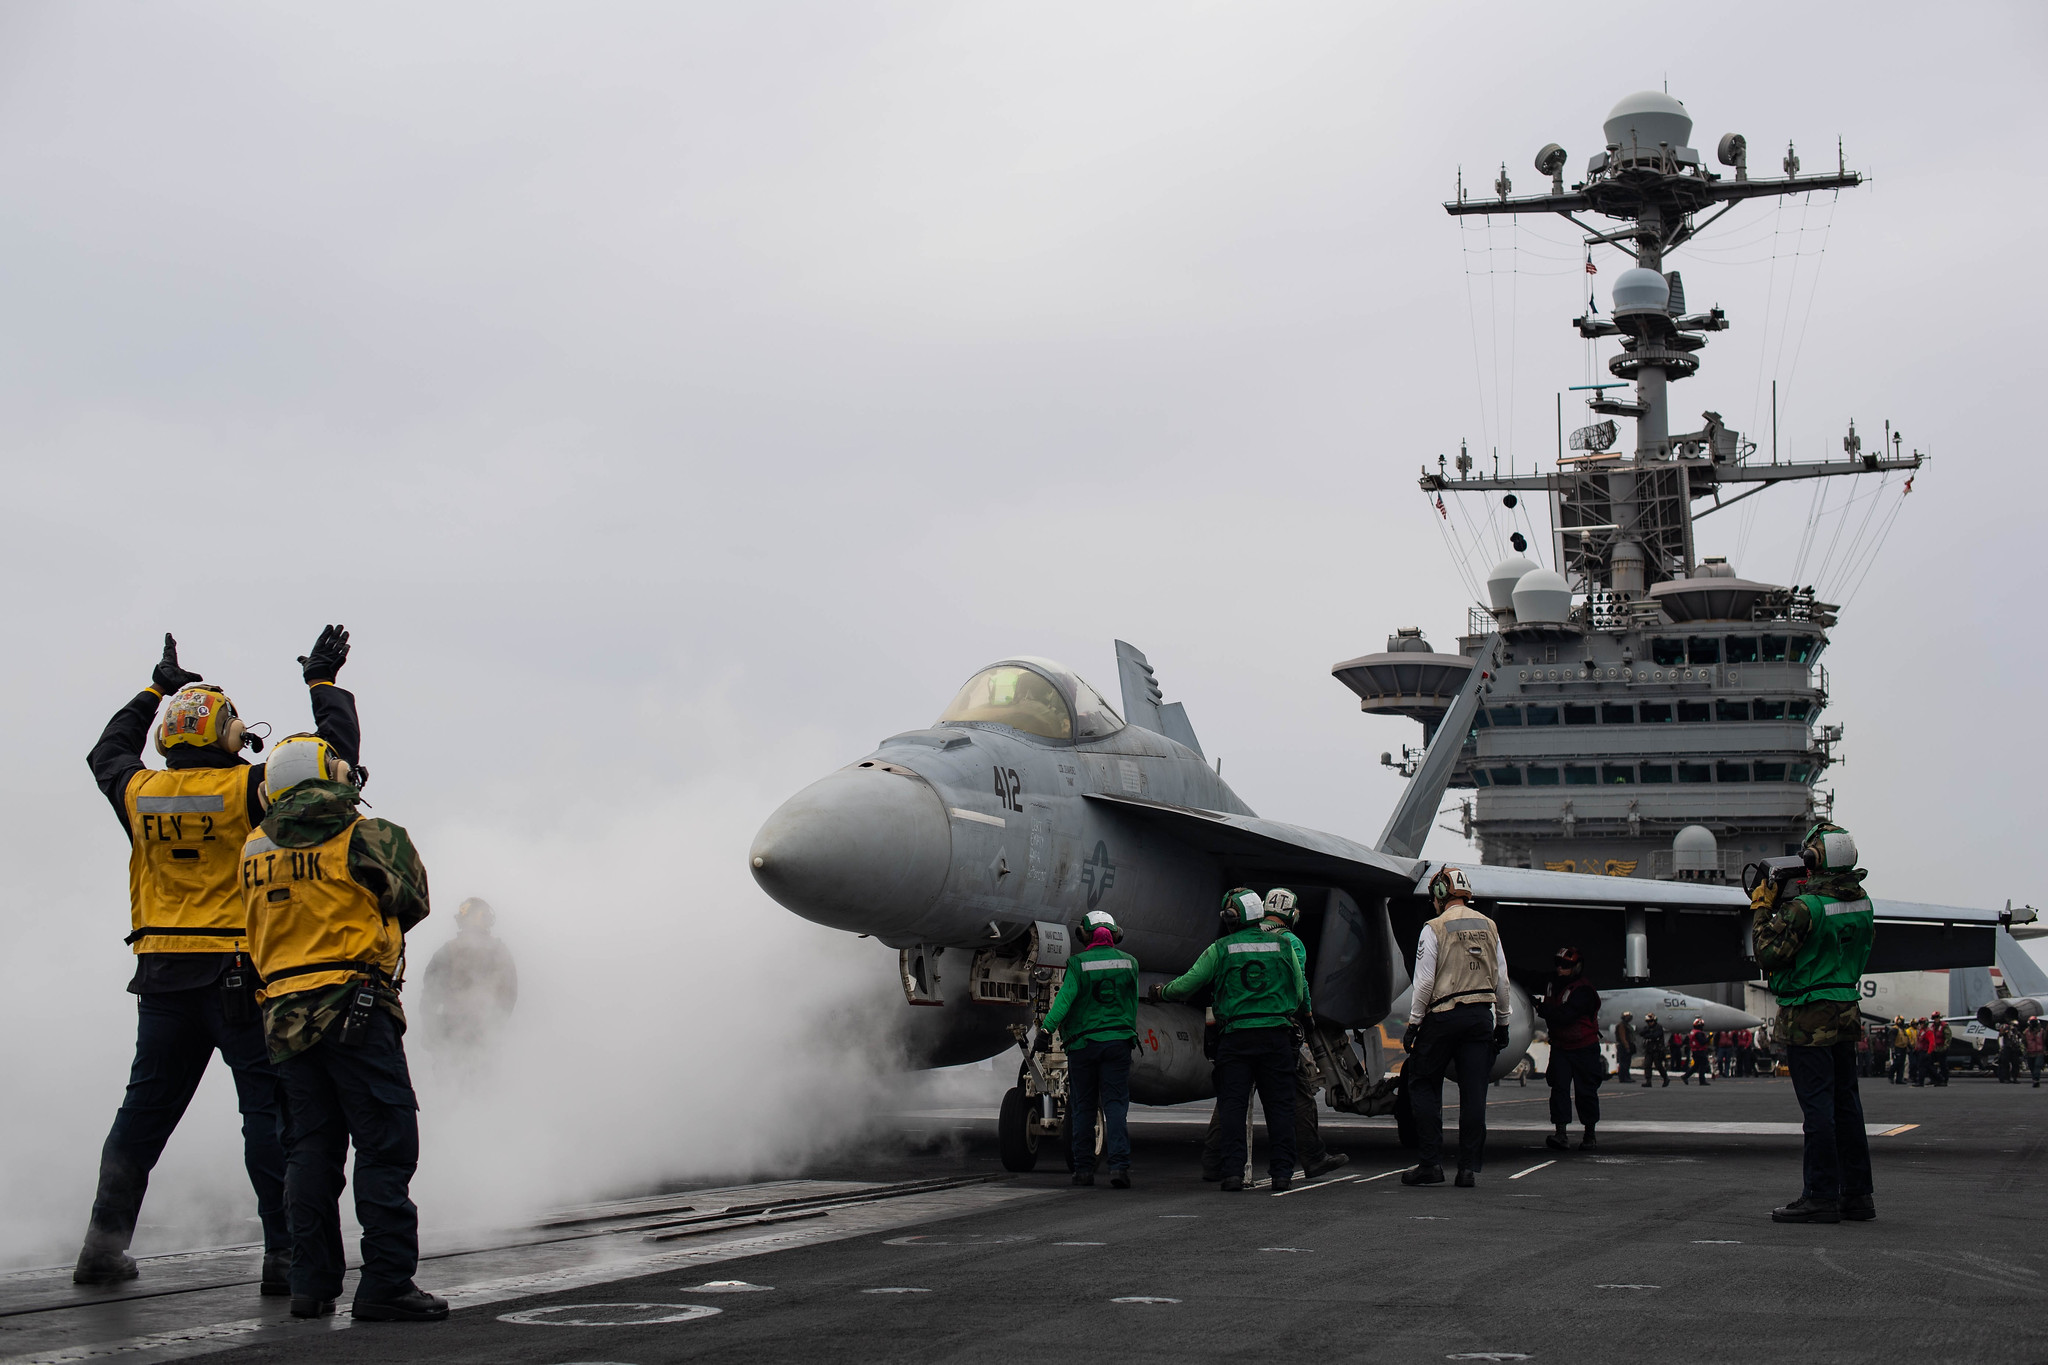 Sailors attach an F/A-18E Super Hornet to a steam-powered catapult on the flight deck of the aircraft carrier USS John C. Stennis (CVN 74) on April 22, 2019, in the Mediterranean Sea. (Mass Communication Specialist 3rd Class Grant G. Grady/Navy)